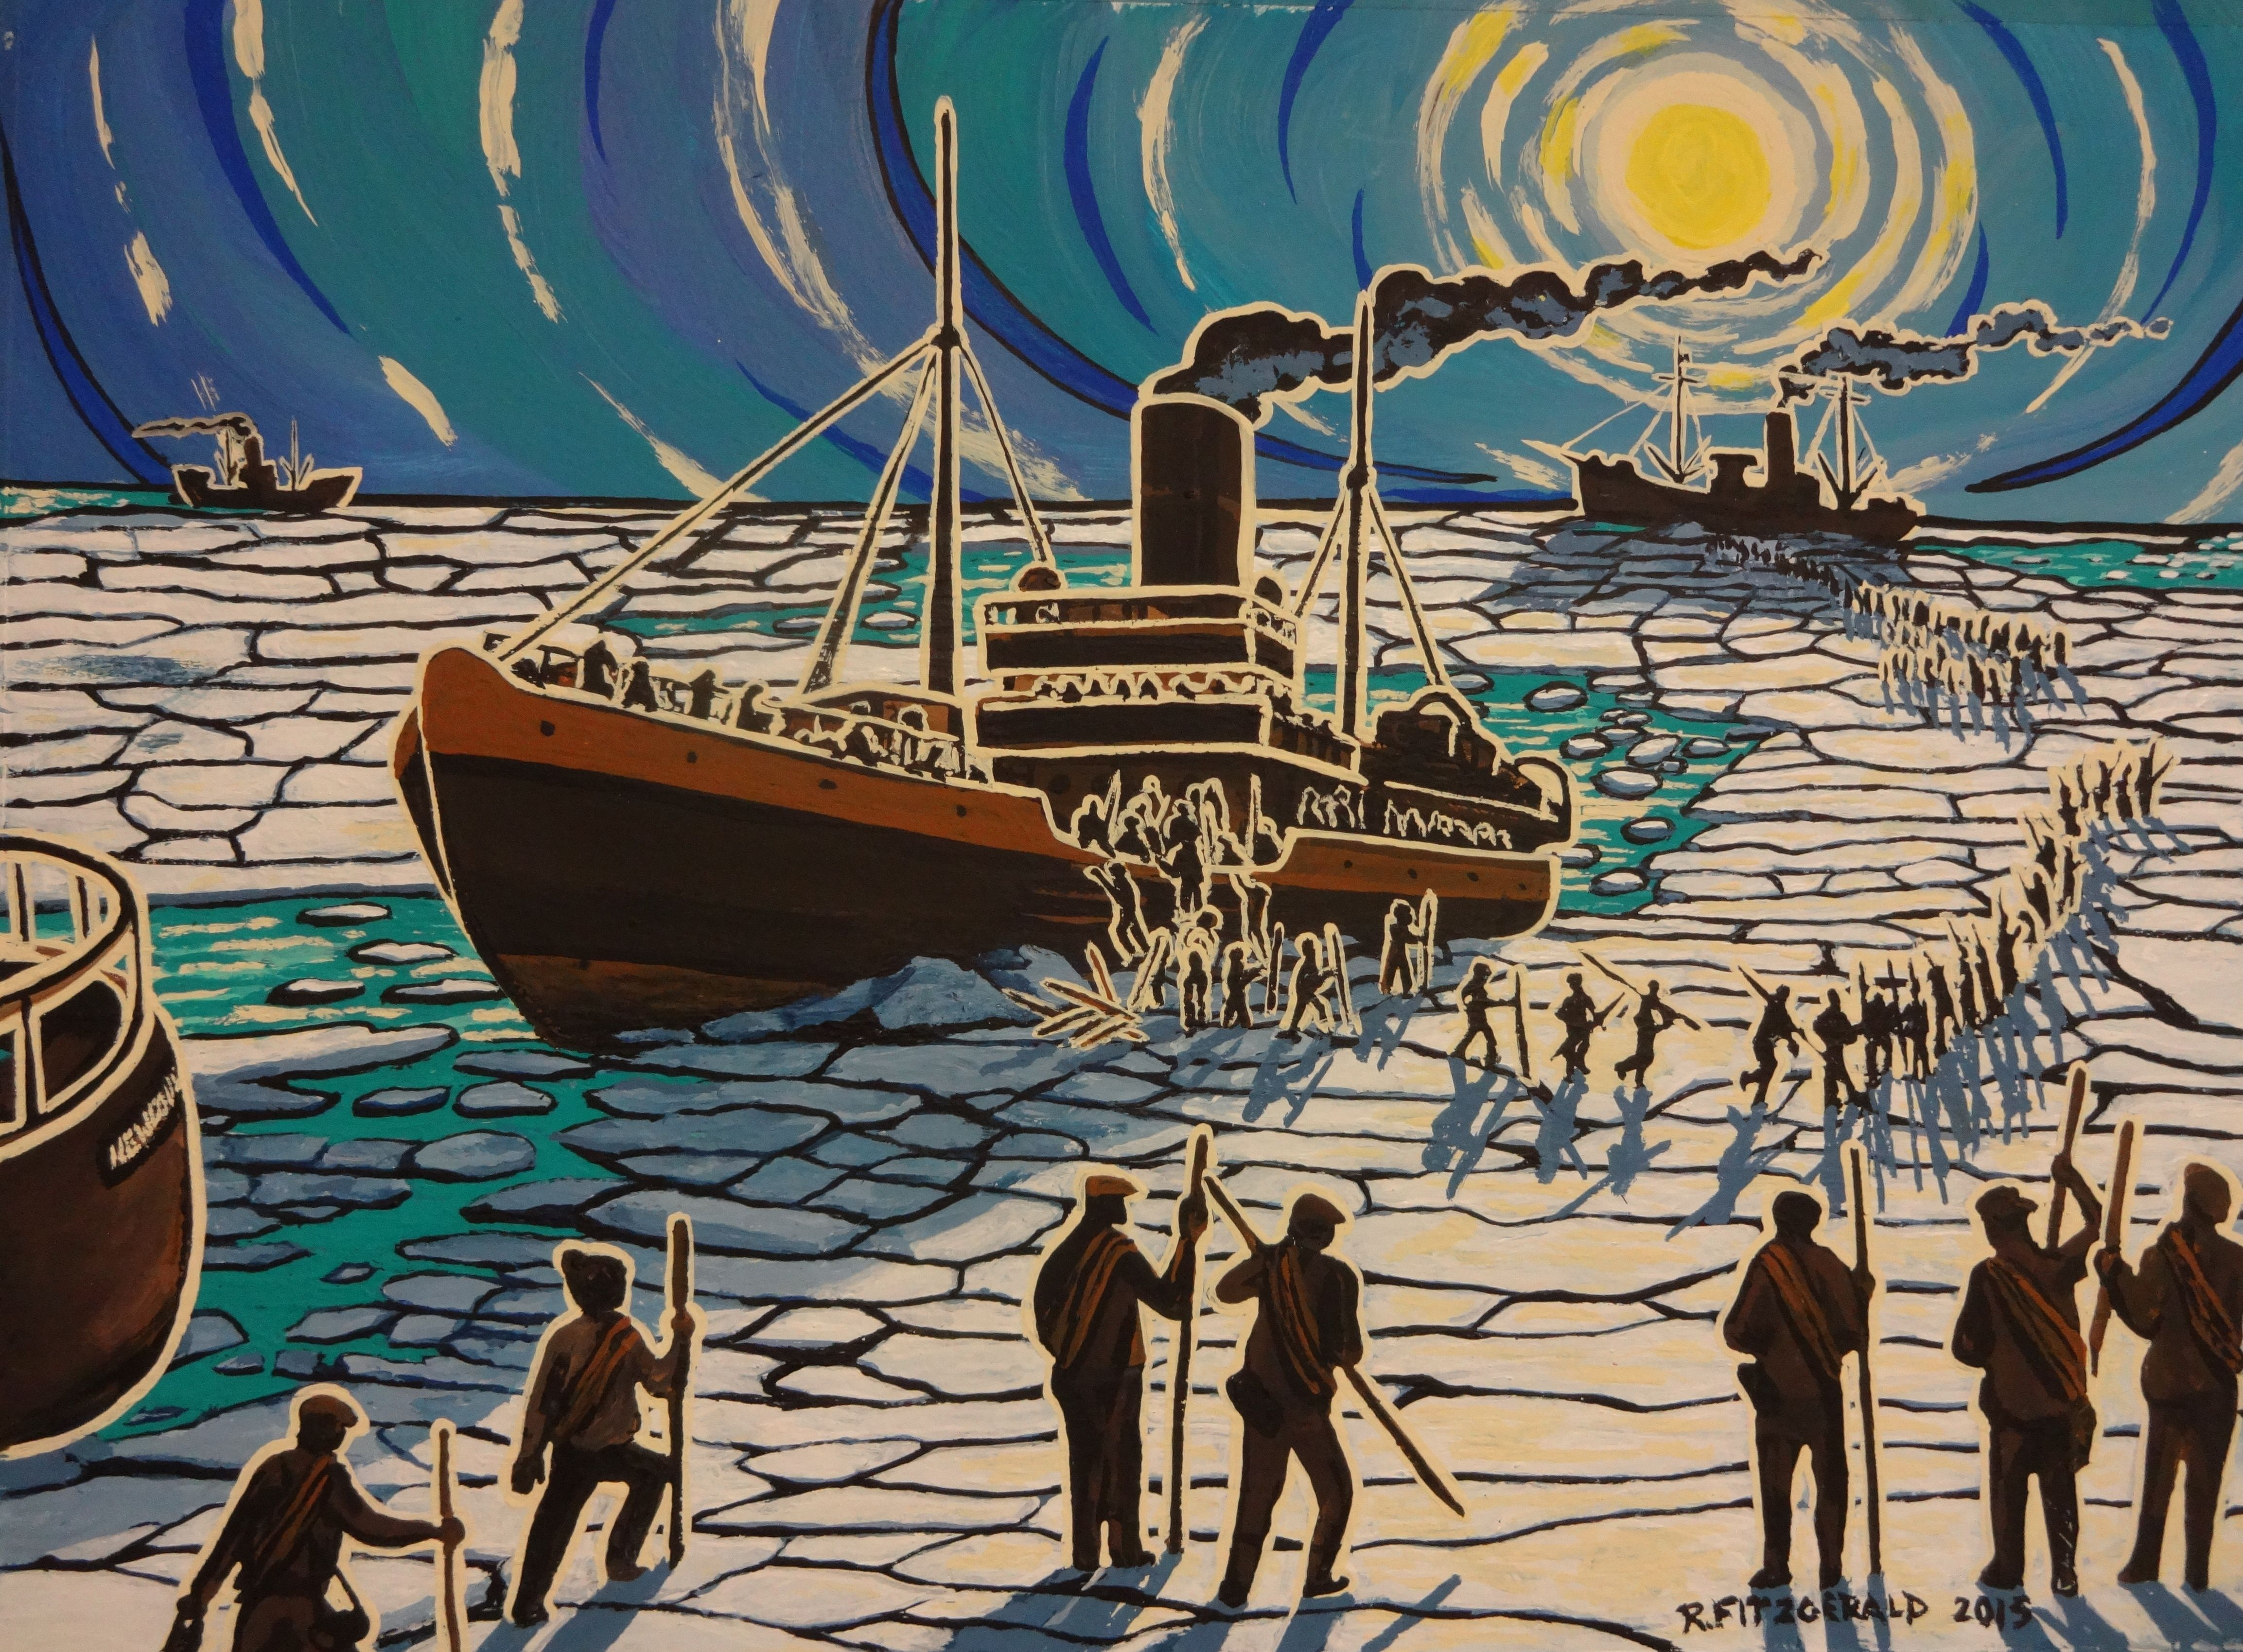 Disembarking Acrylic Painting By Reilly Fitzgerald From Newfoundland Sealing Disaster Collection